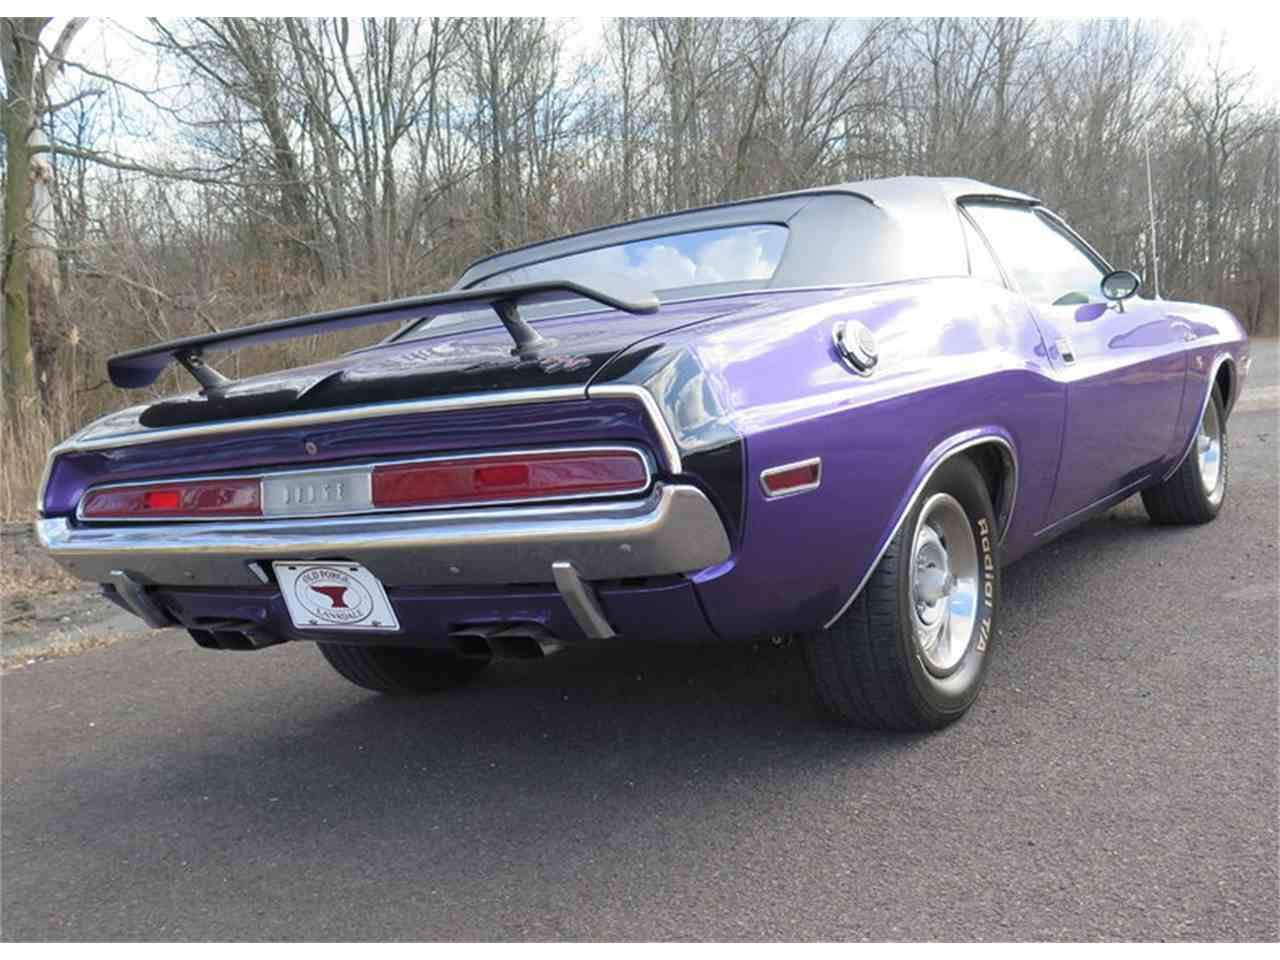 1970 Dodge Challenger Viper V10 Convertible For Sale HD Wallpapers Download free images and photos [musssic.tk]